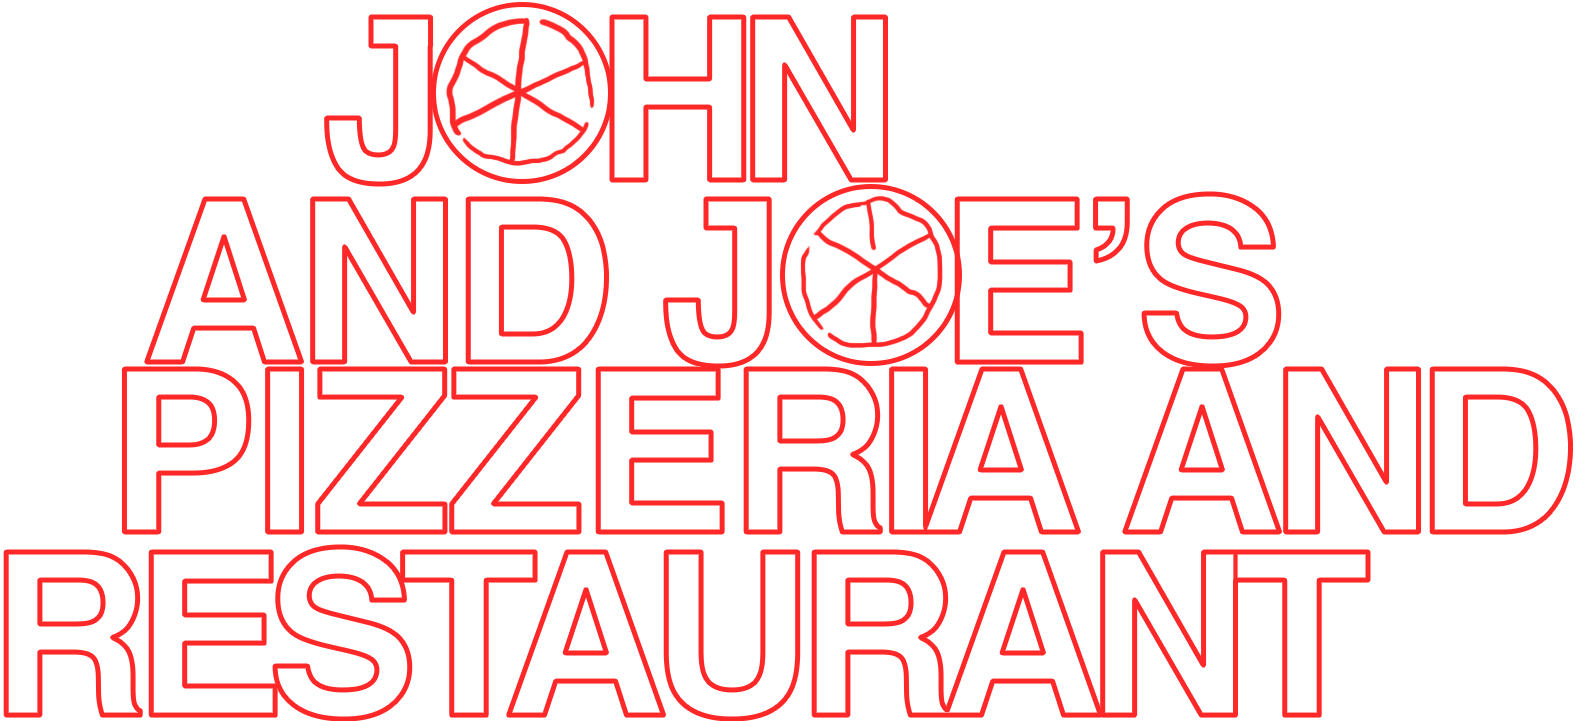 J&J_PIZZA.png